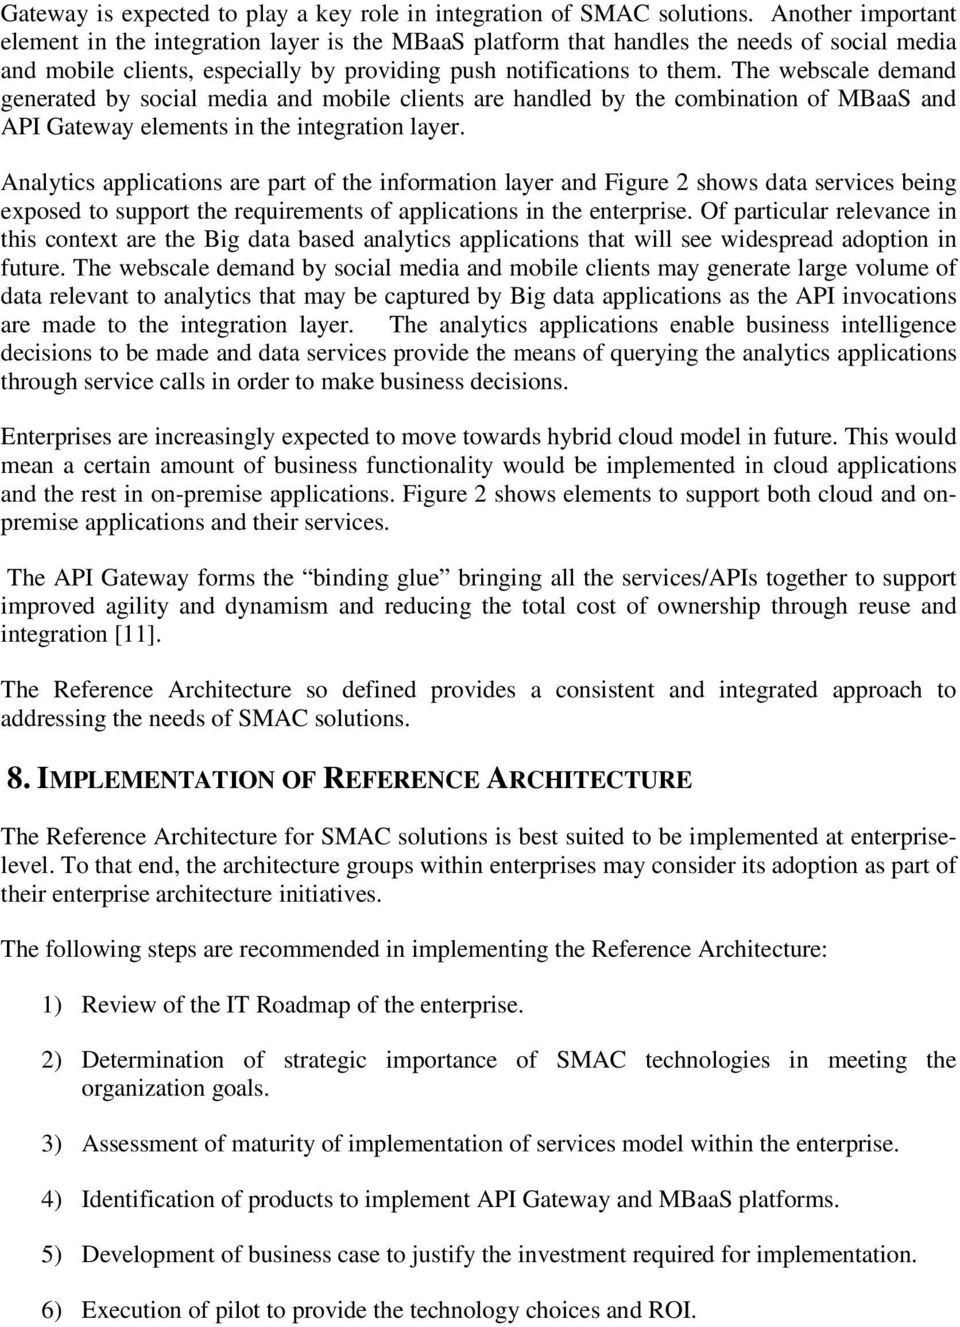 REFERENCE ARCHITECTURE FOR SMAC SOLUTIONS - PDF